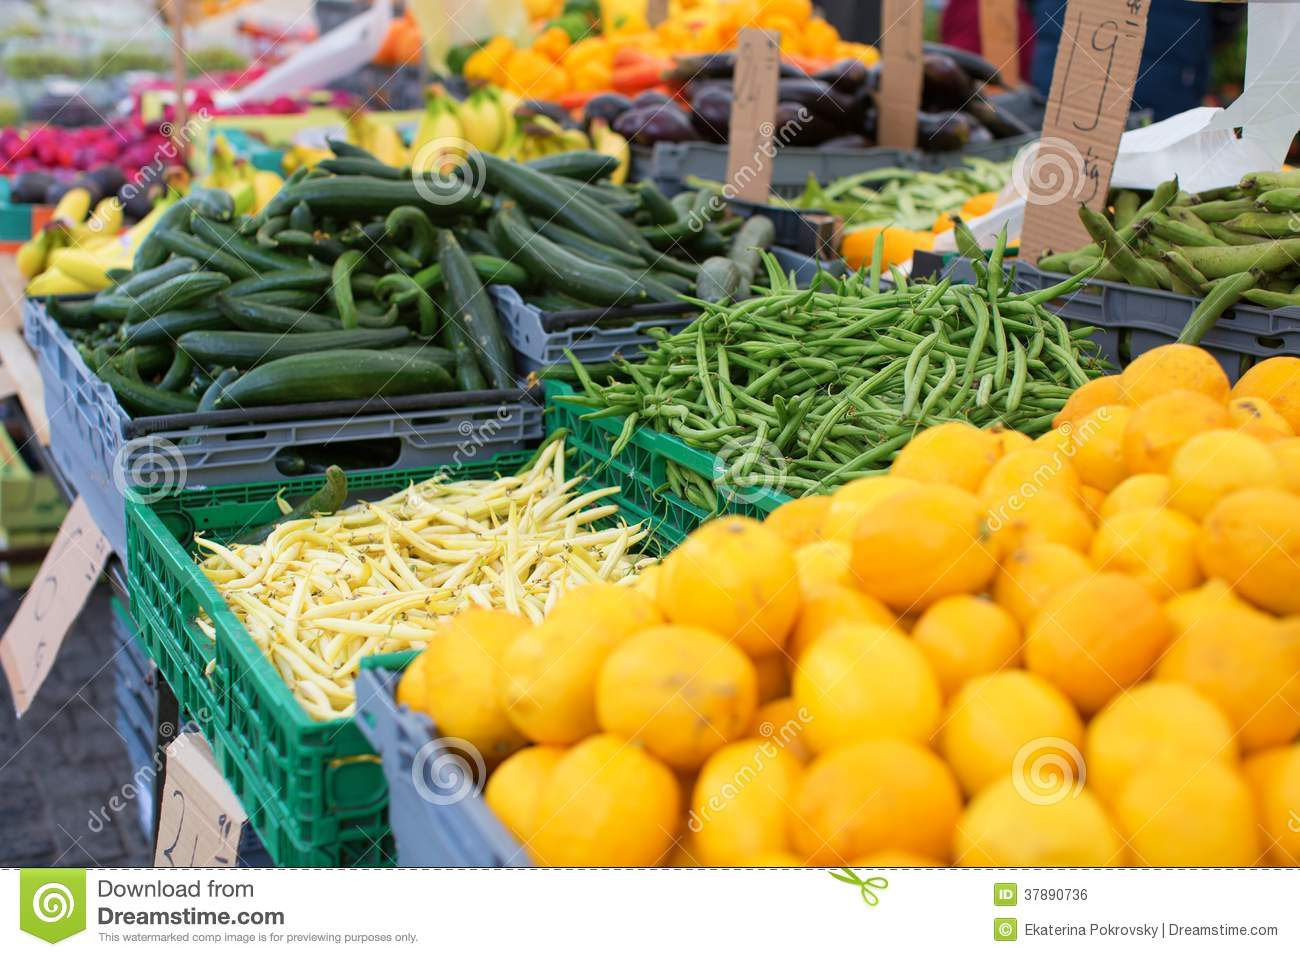 Fruits and vegetables on market